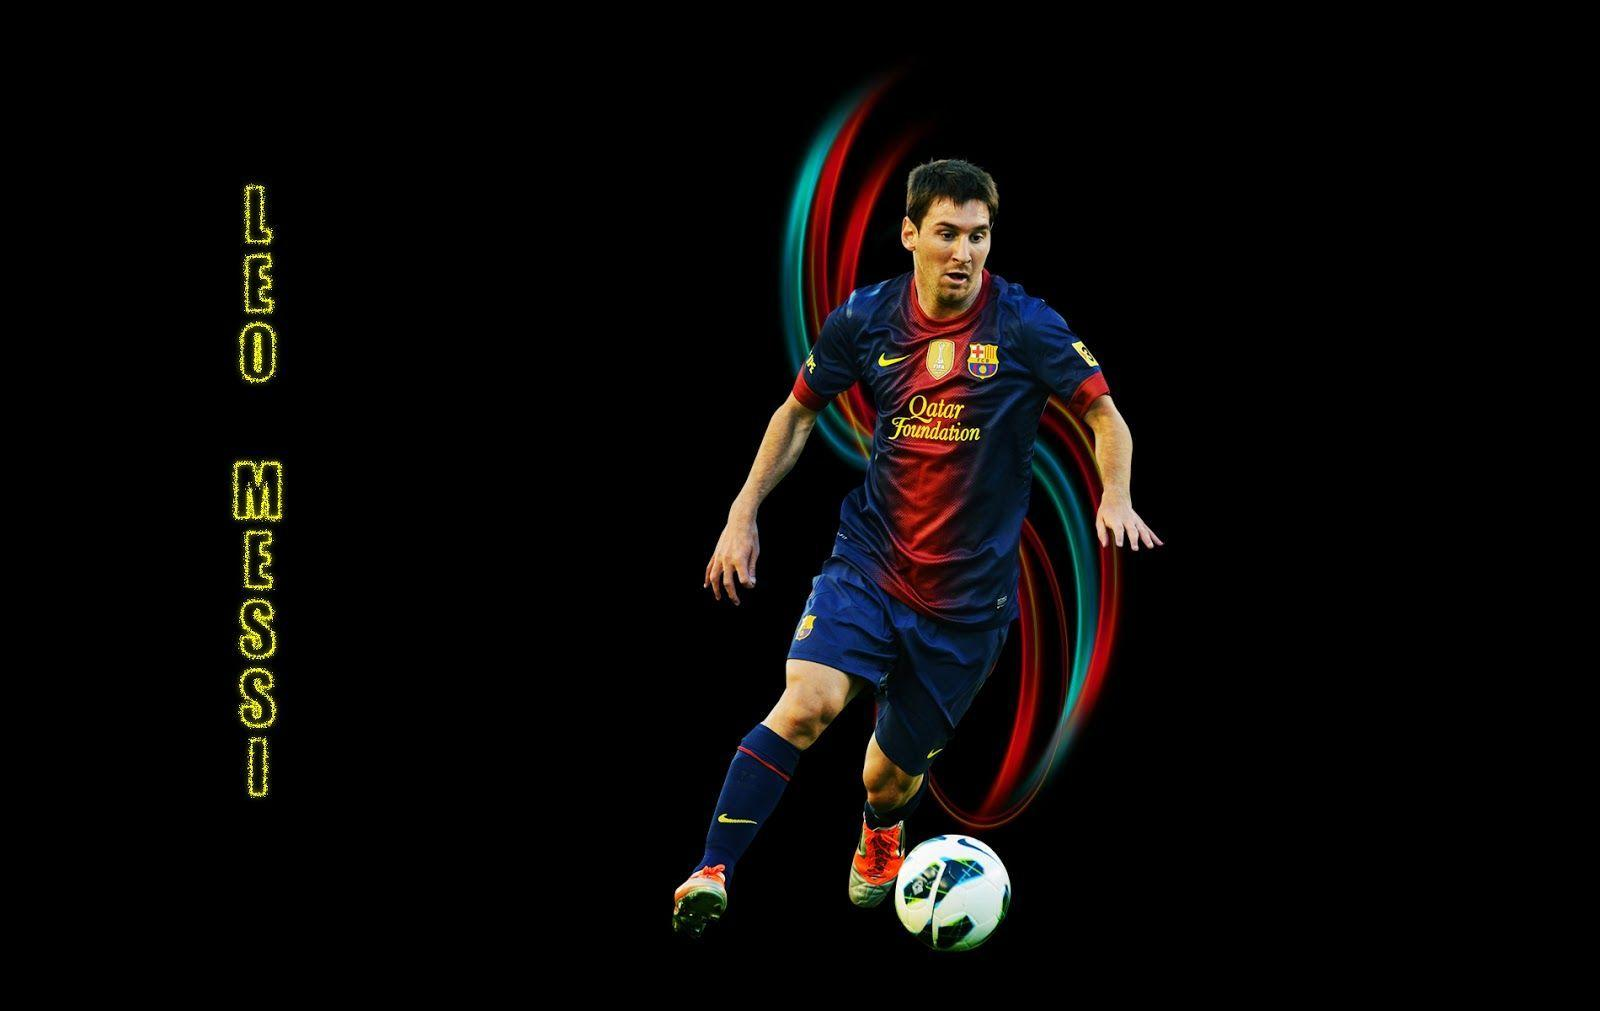 Lionel Messi 2016 Wallpapers HD 1080p 1600x1011